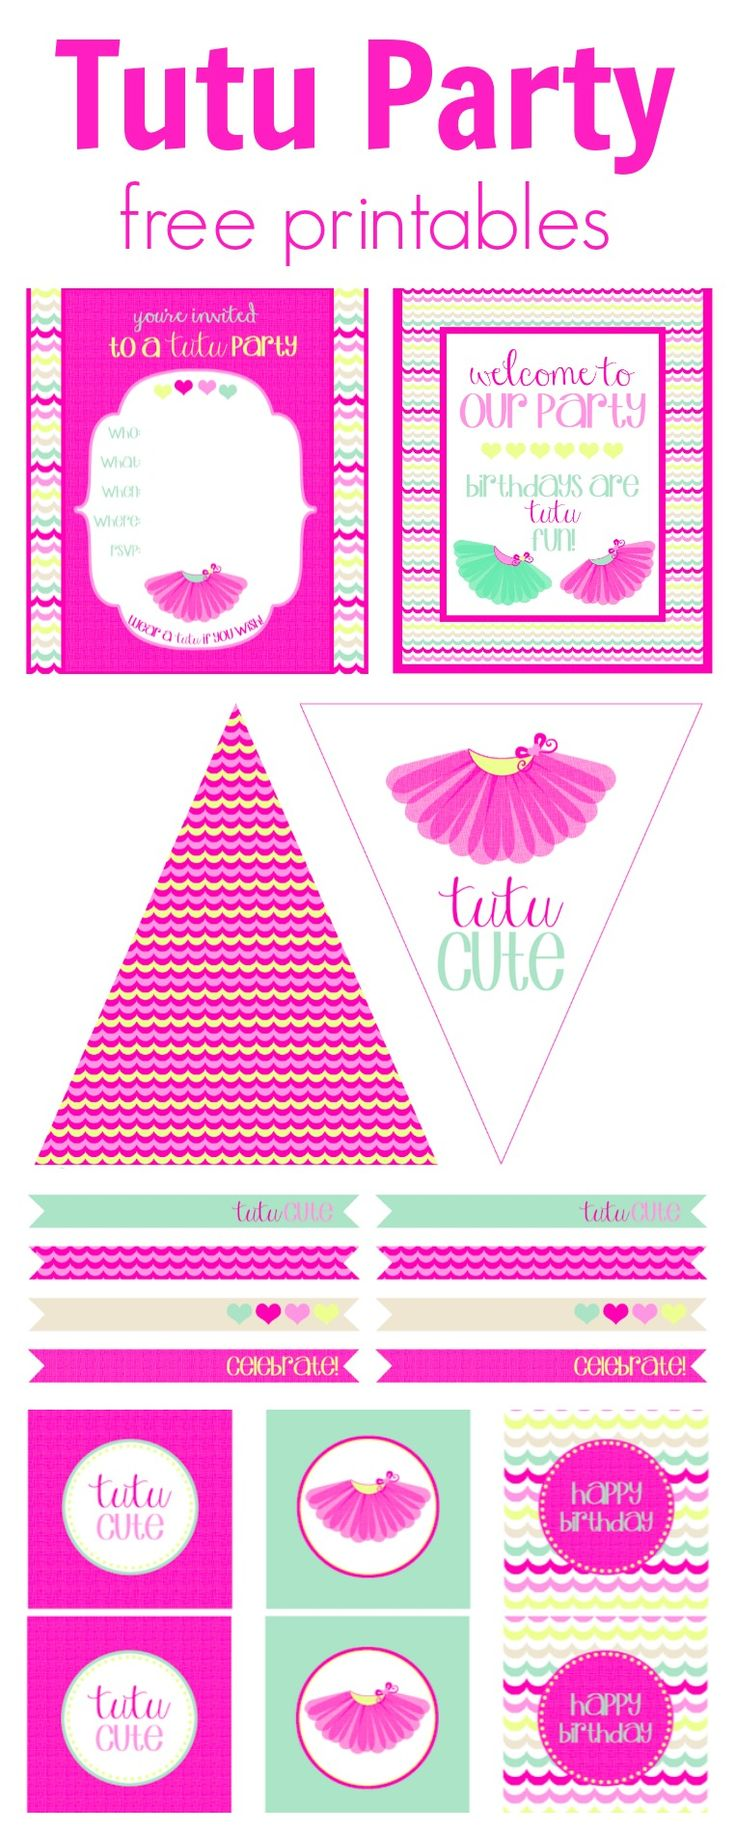 best images about lds young women ideas tutu party printables perfect birthday or playdate theme <3 weheartparties